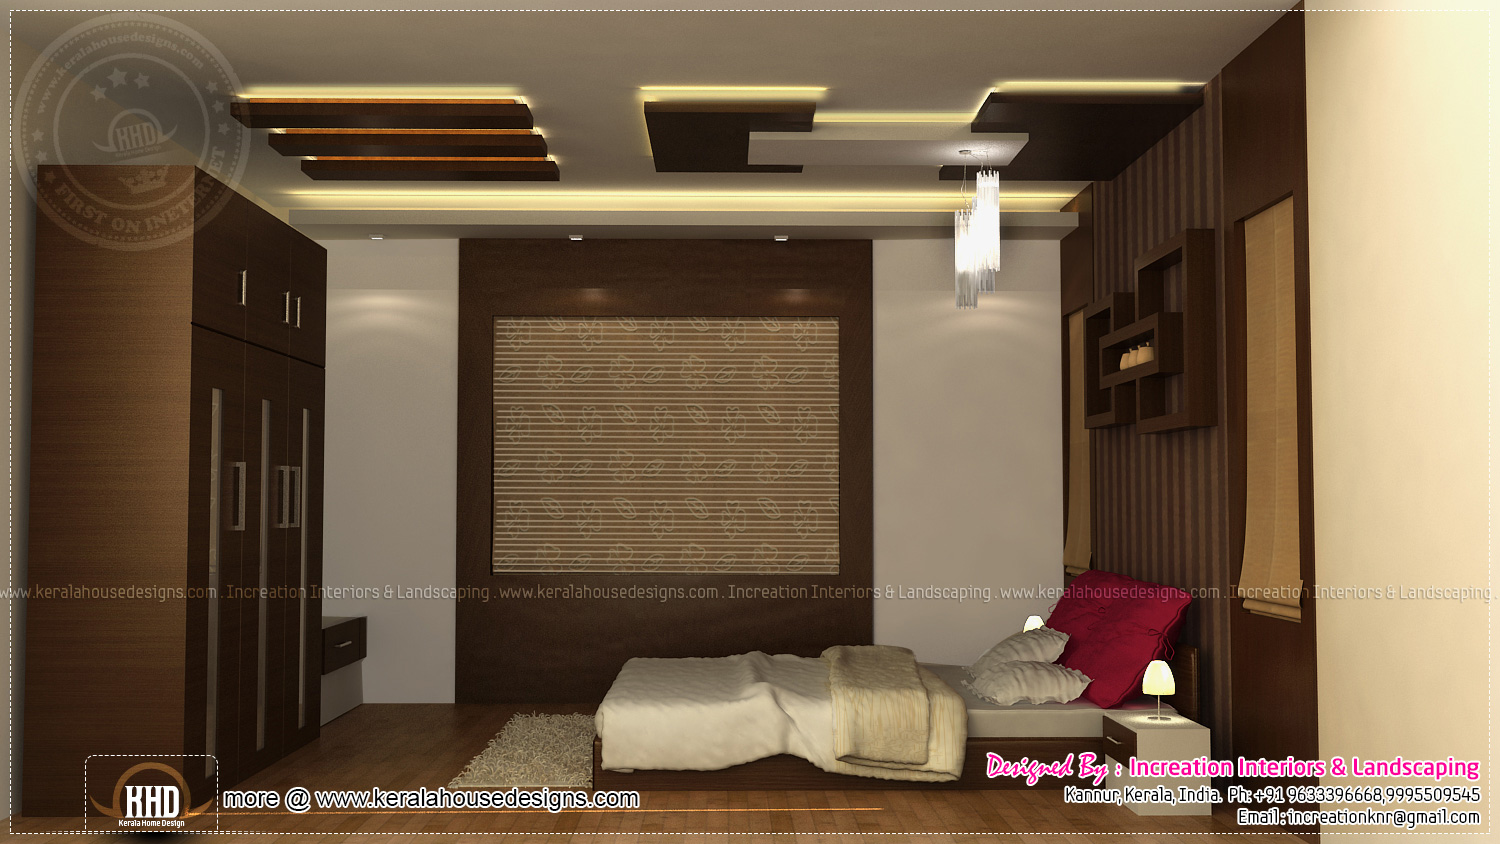 Interior designs by increation kannur kerala home for Interior design ideas for small homes in kerala